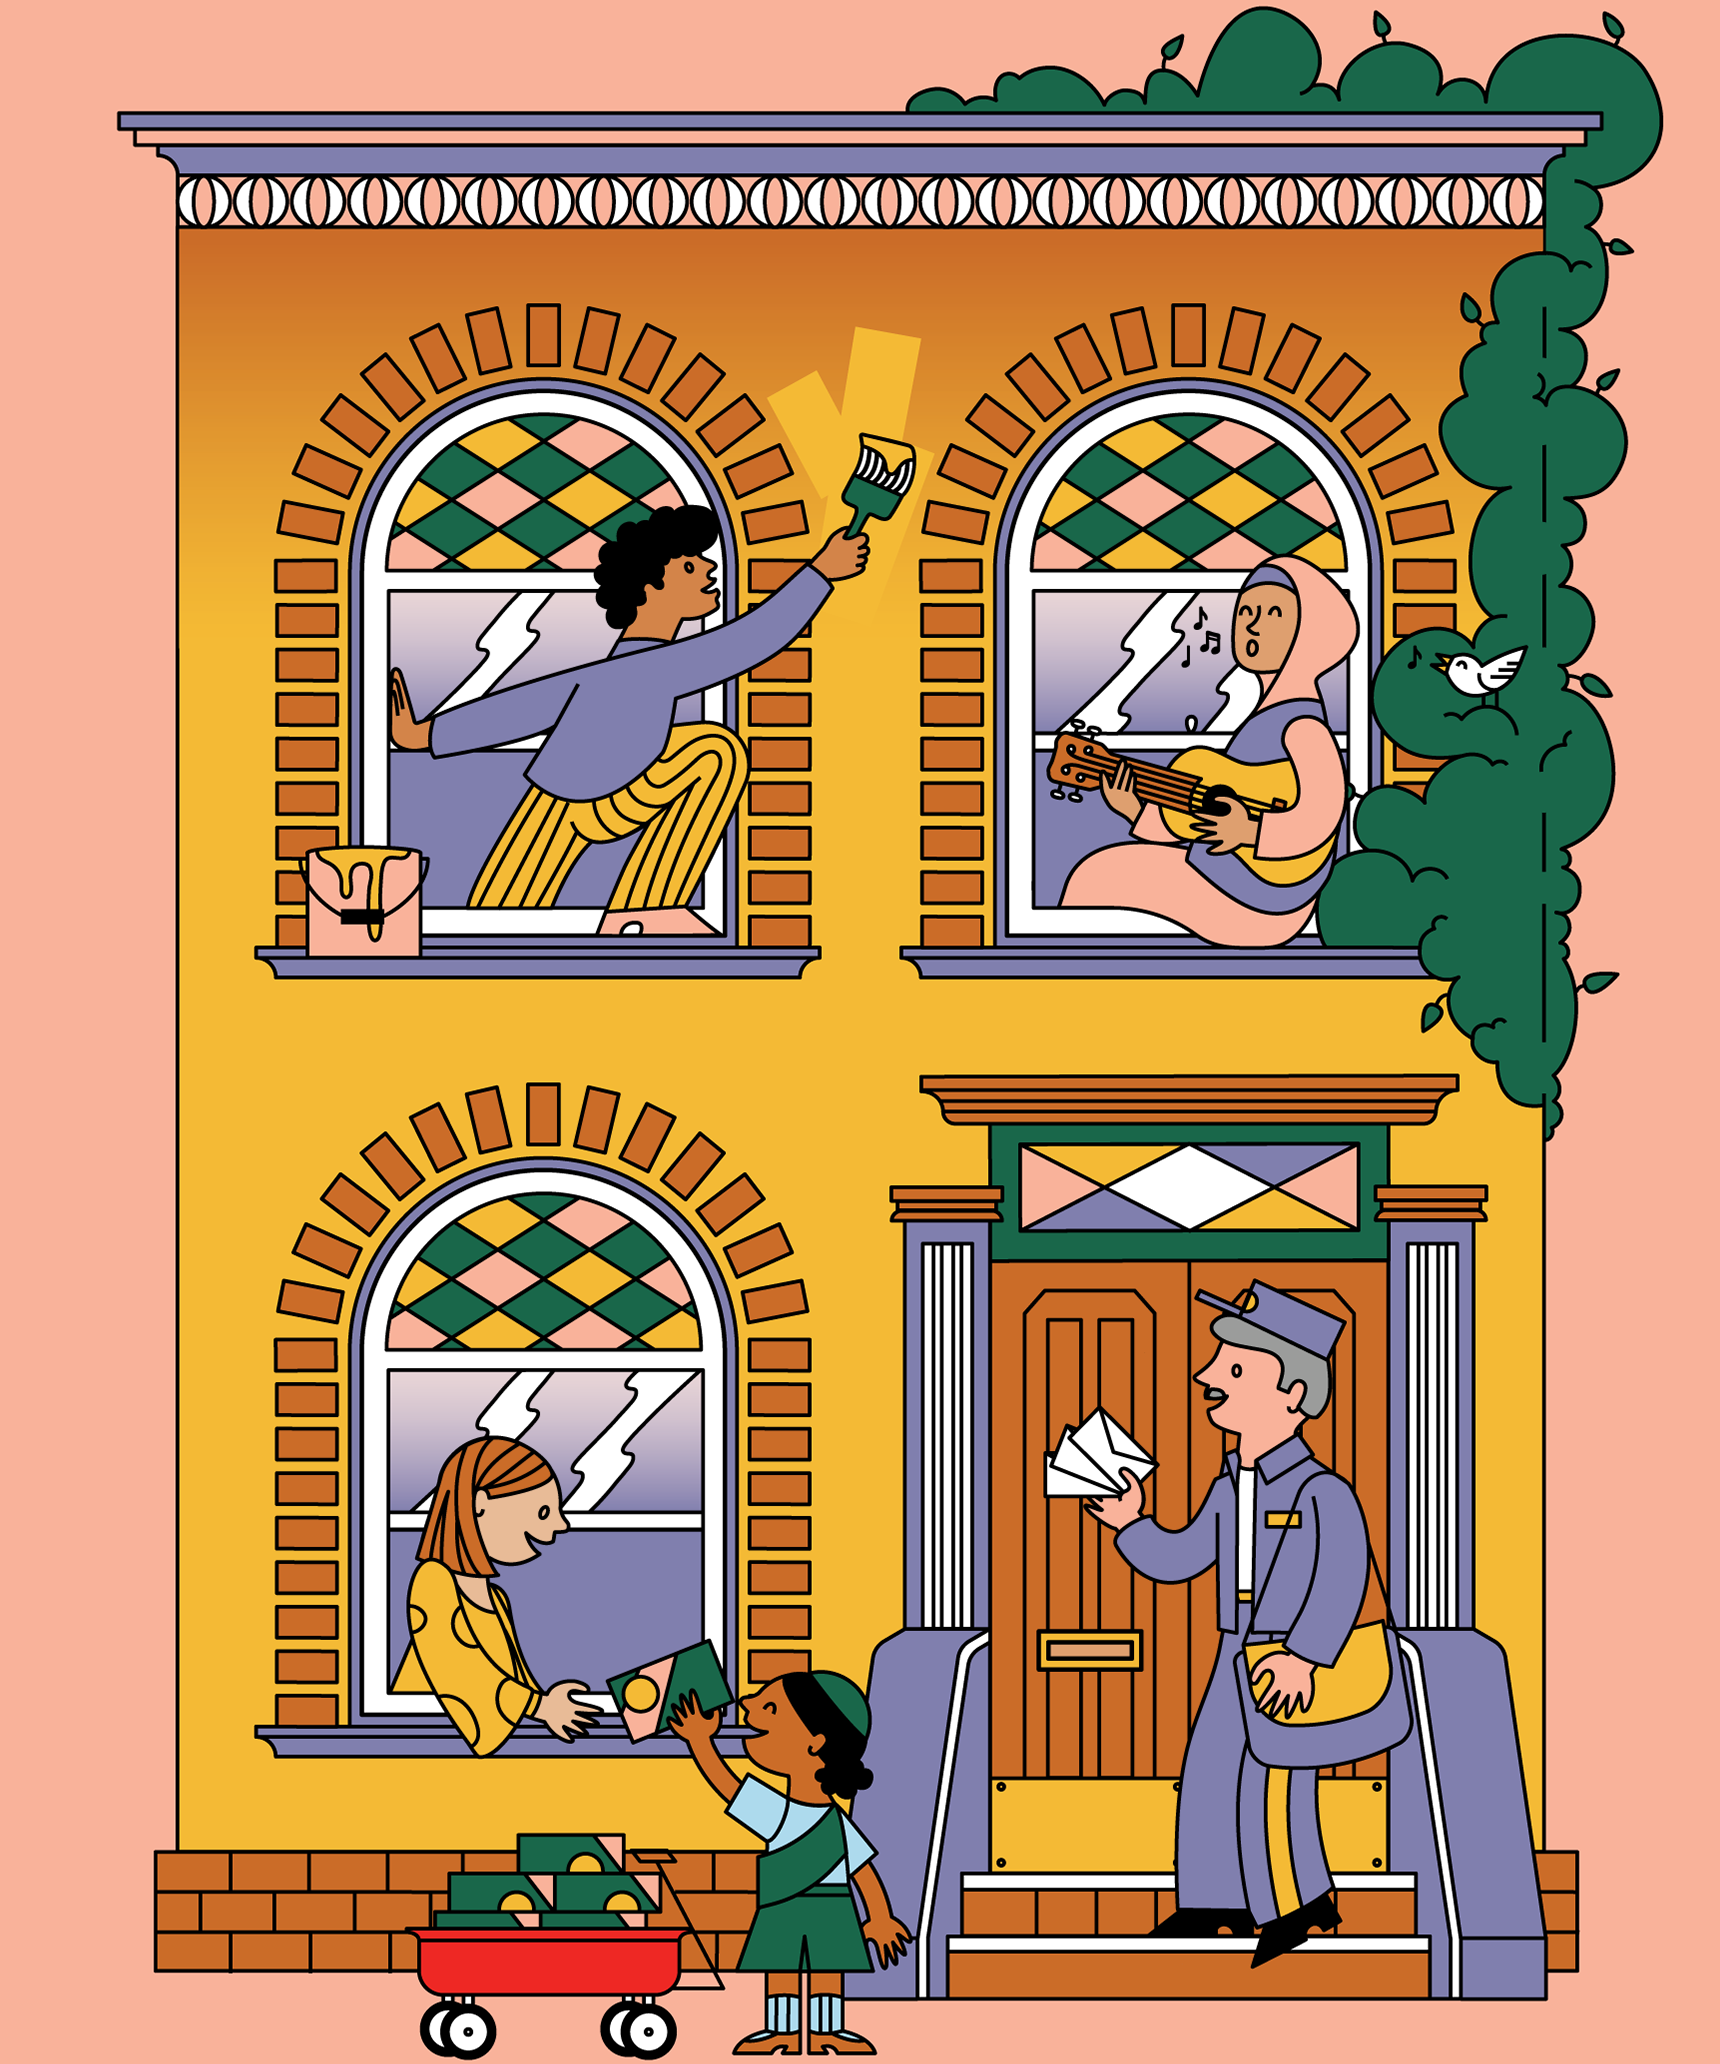 Illustration by Berenice Méndez includes a building with three windows, each with a person in the window.